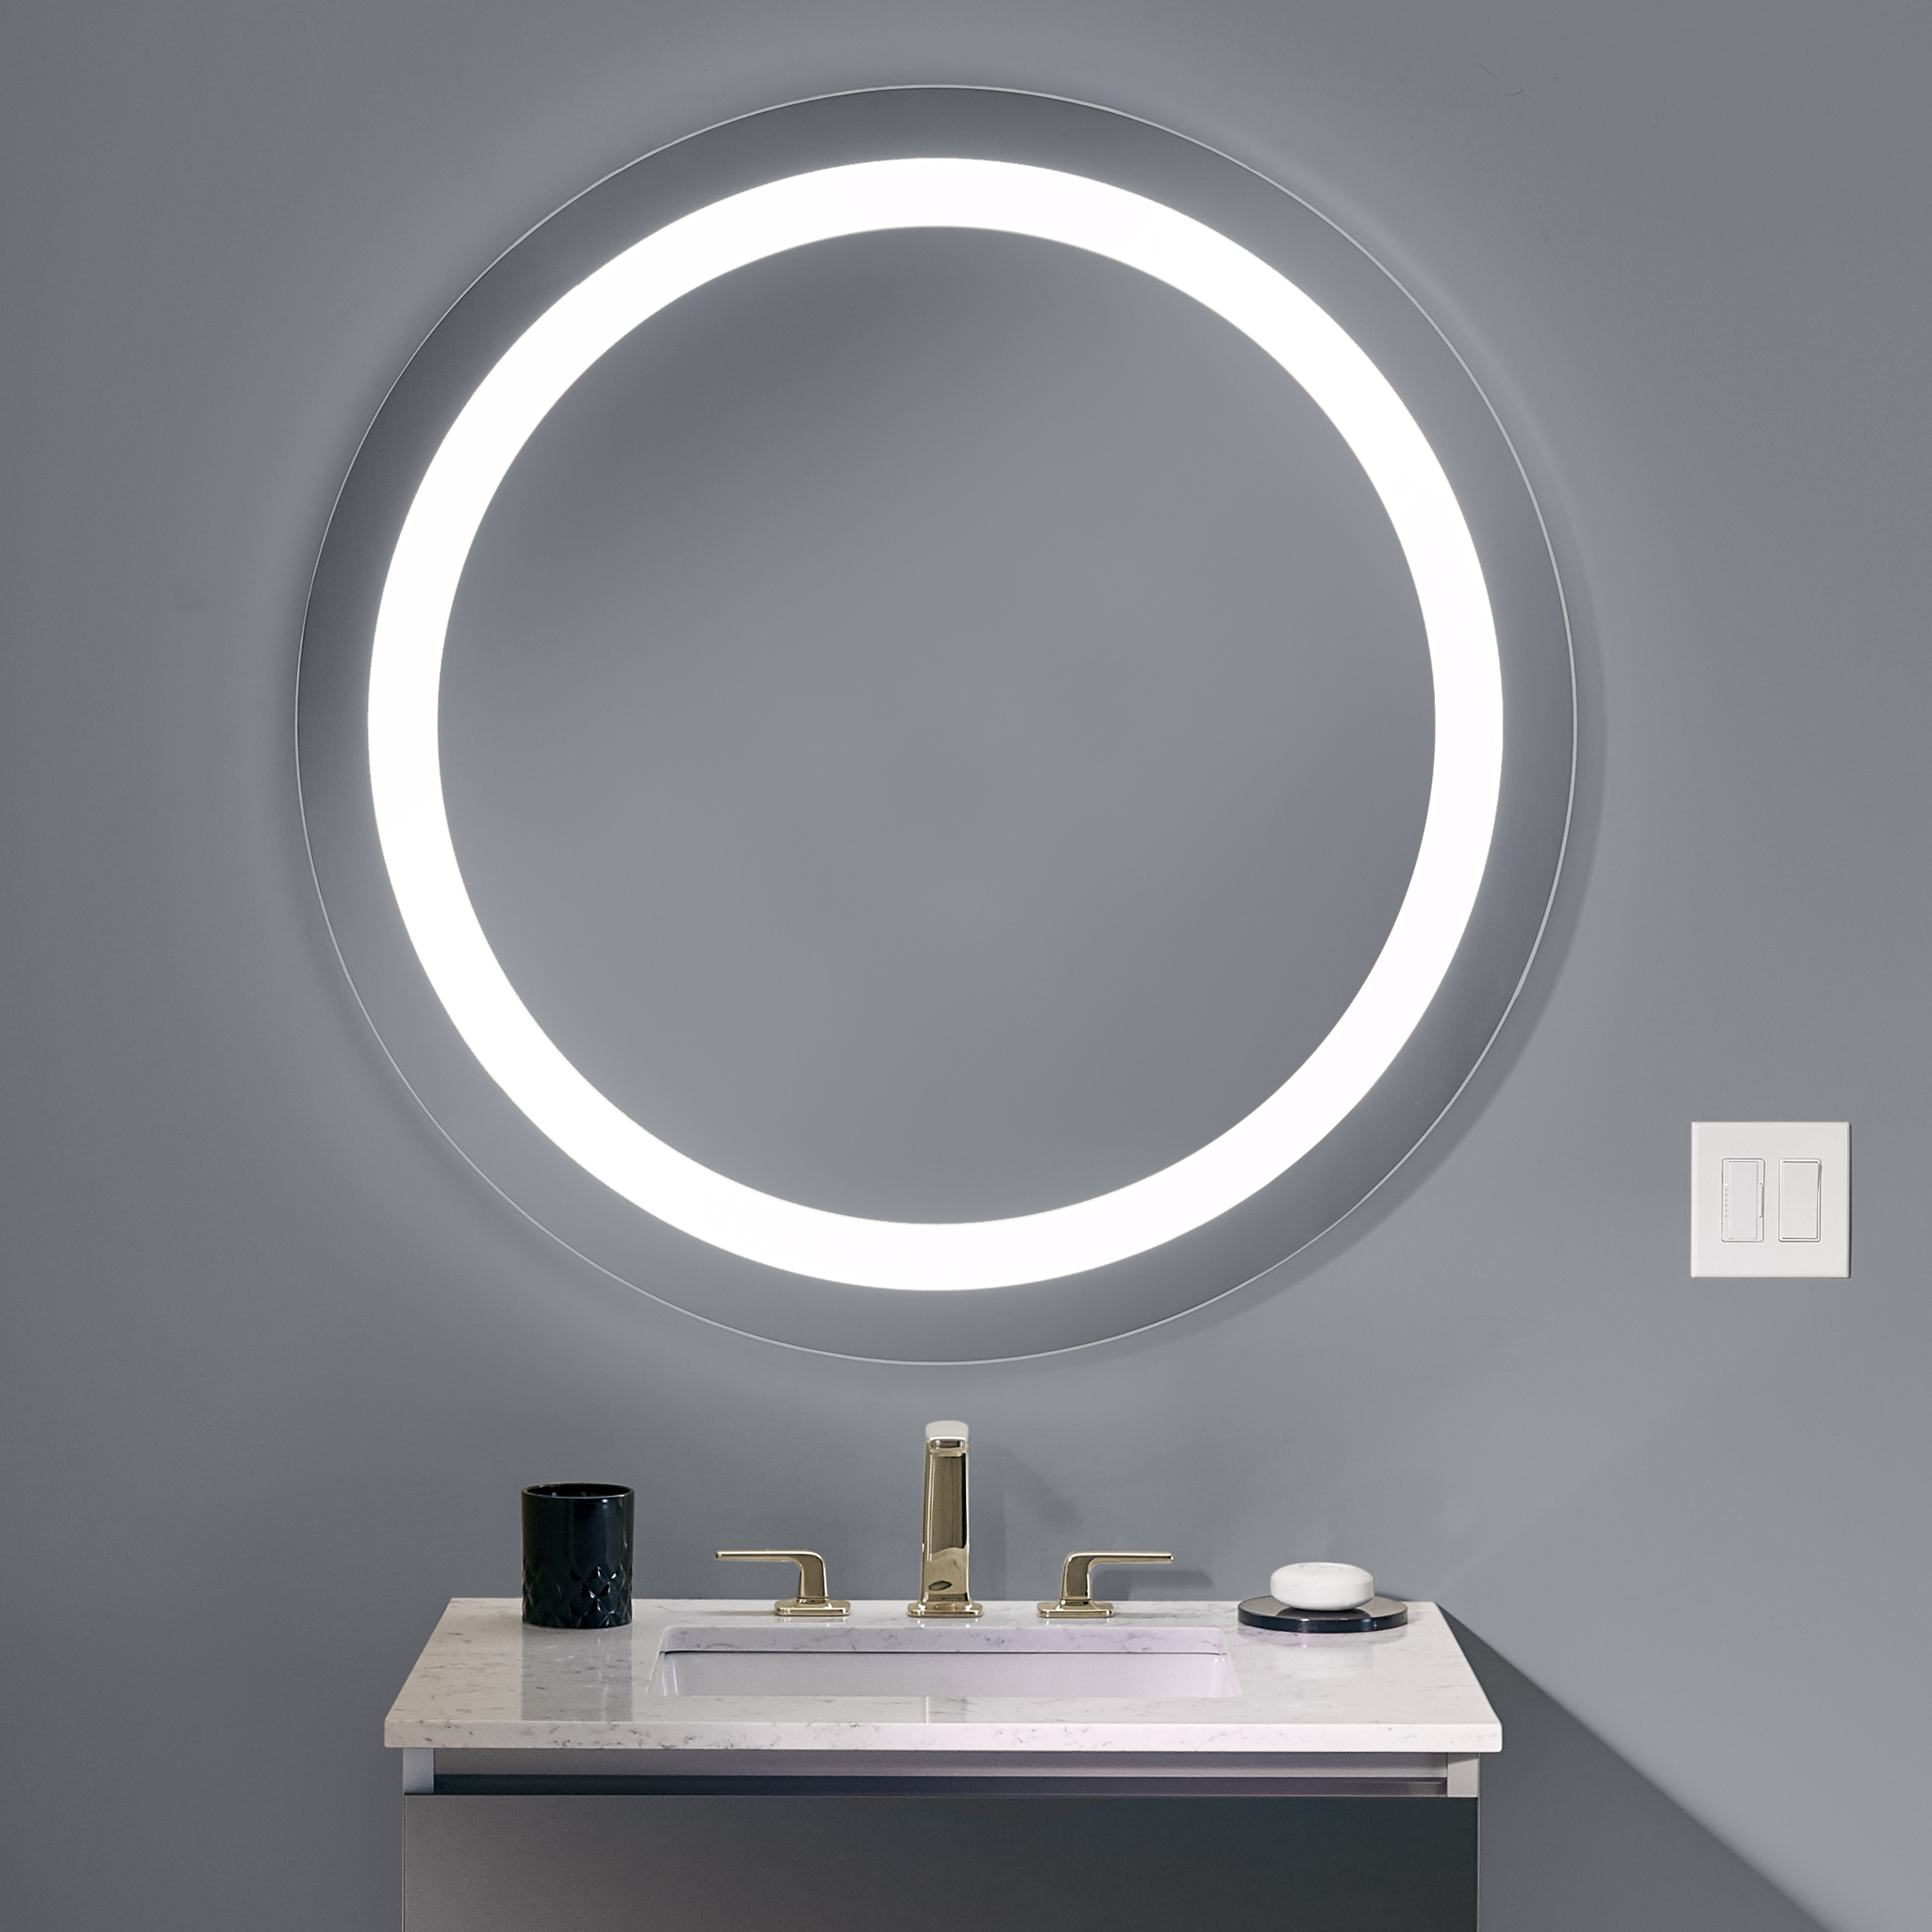 Bathroom Mirrors | Robern With Regard To Marion Wall Mirrors (View 18 of 20)